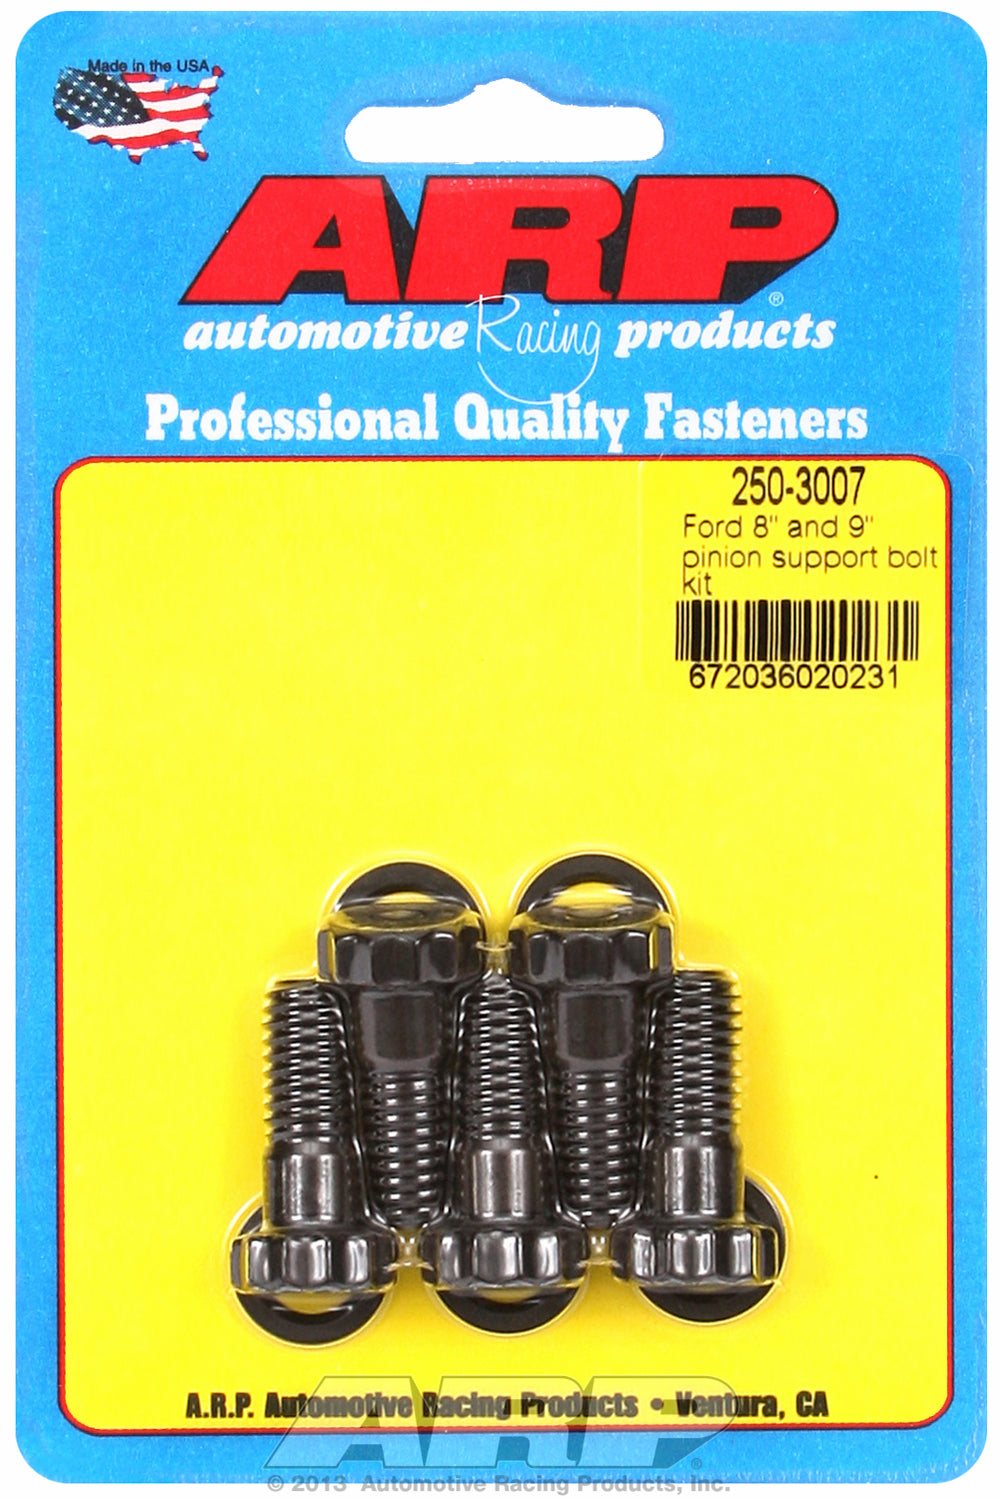 8˝ and 9˝ pinion support bolt kit for Ford 1 UHL 3/8-16 Thread